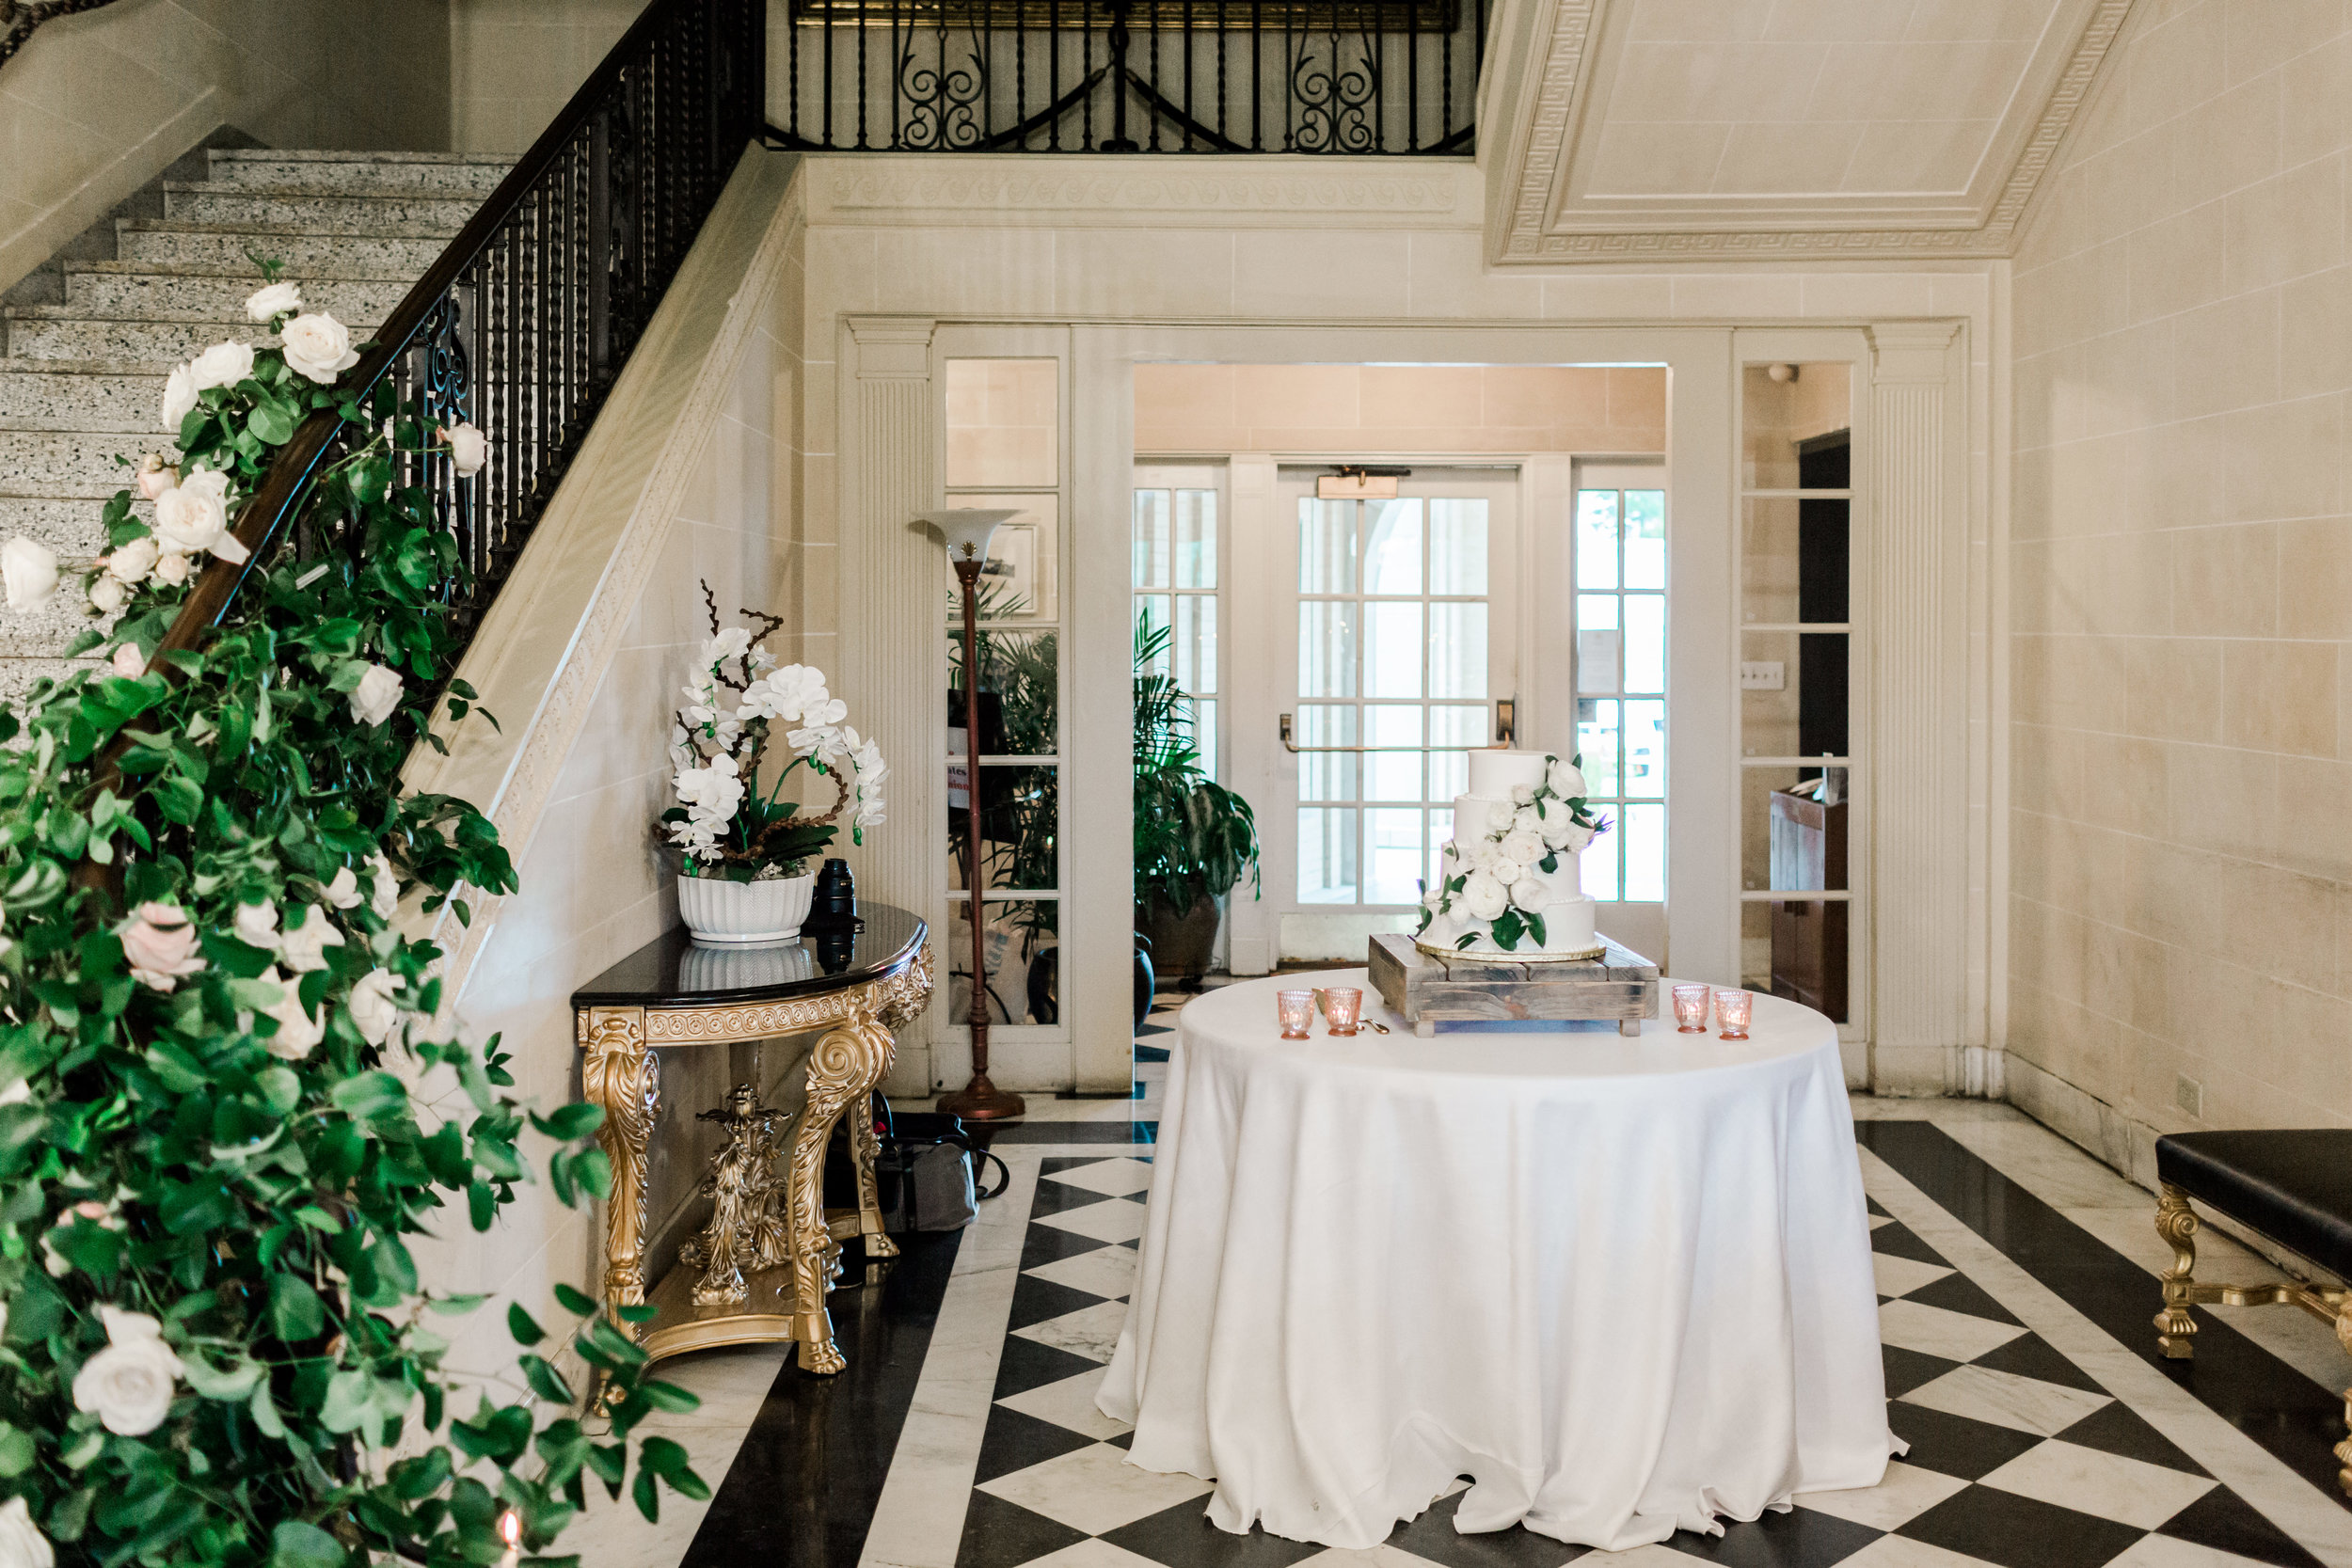 The Mansion at Woodward Park Tulsa Oklahoma Wedding_Valorie Darling Photography-6550.jpg